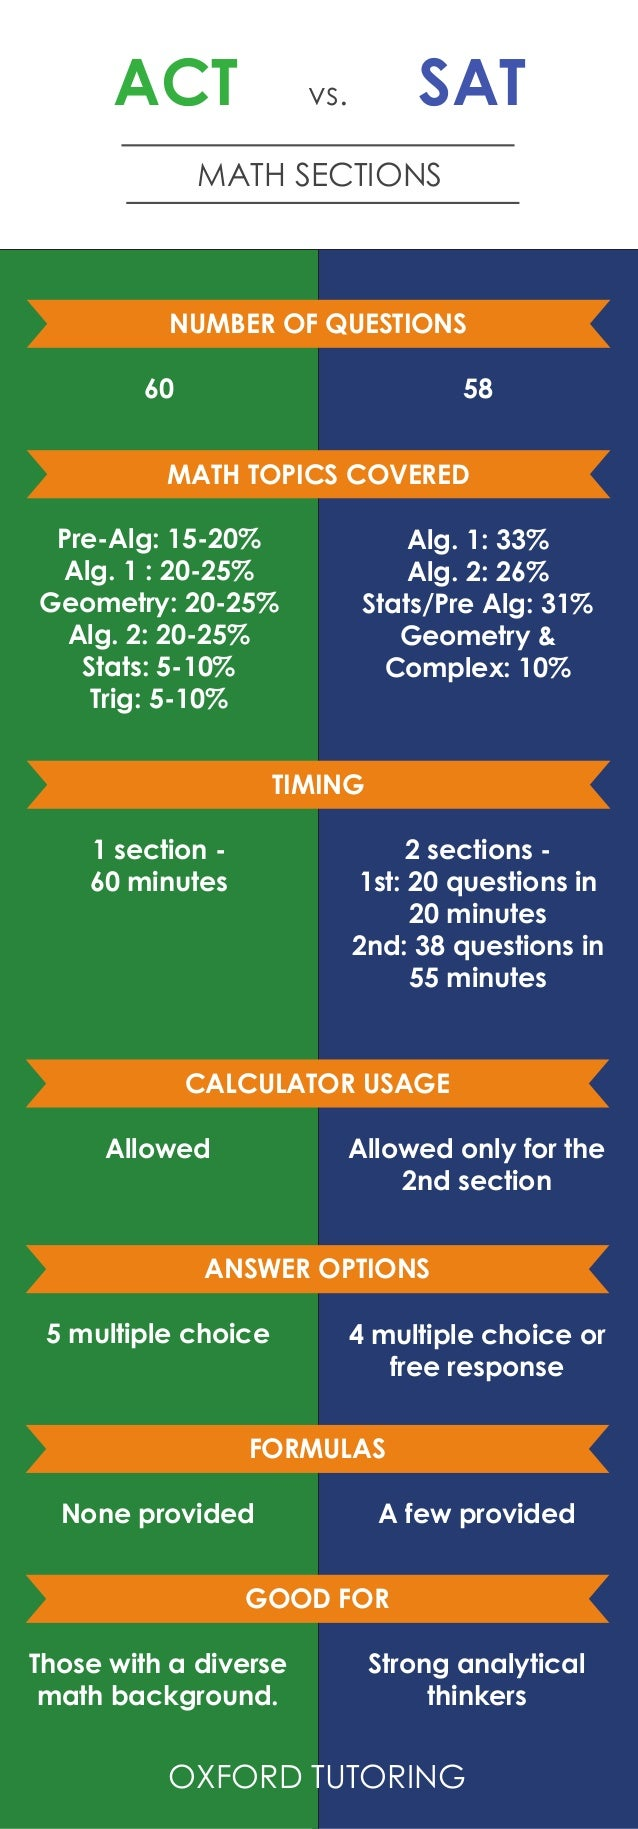 ACT vs. SAT MATH SECTIONS NUMBER OF QUESTIONS 60 58 MATH TOPICS COVERED Pre-Alg: 15-20% Alg. 1 : 20-25% Geometry: 20-25% A...